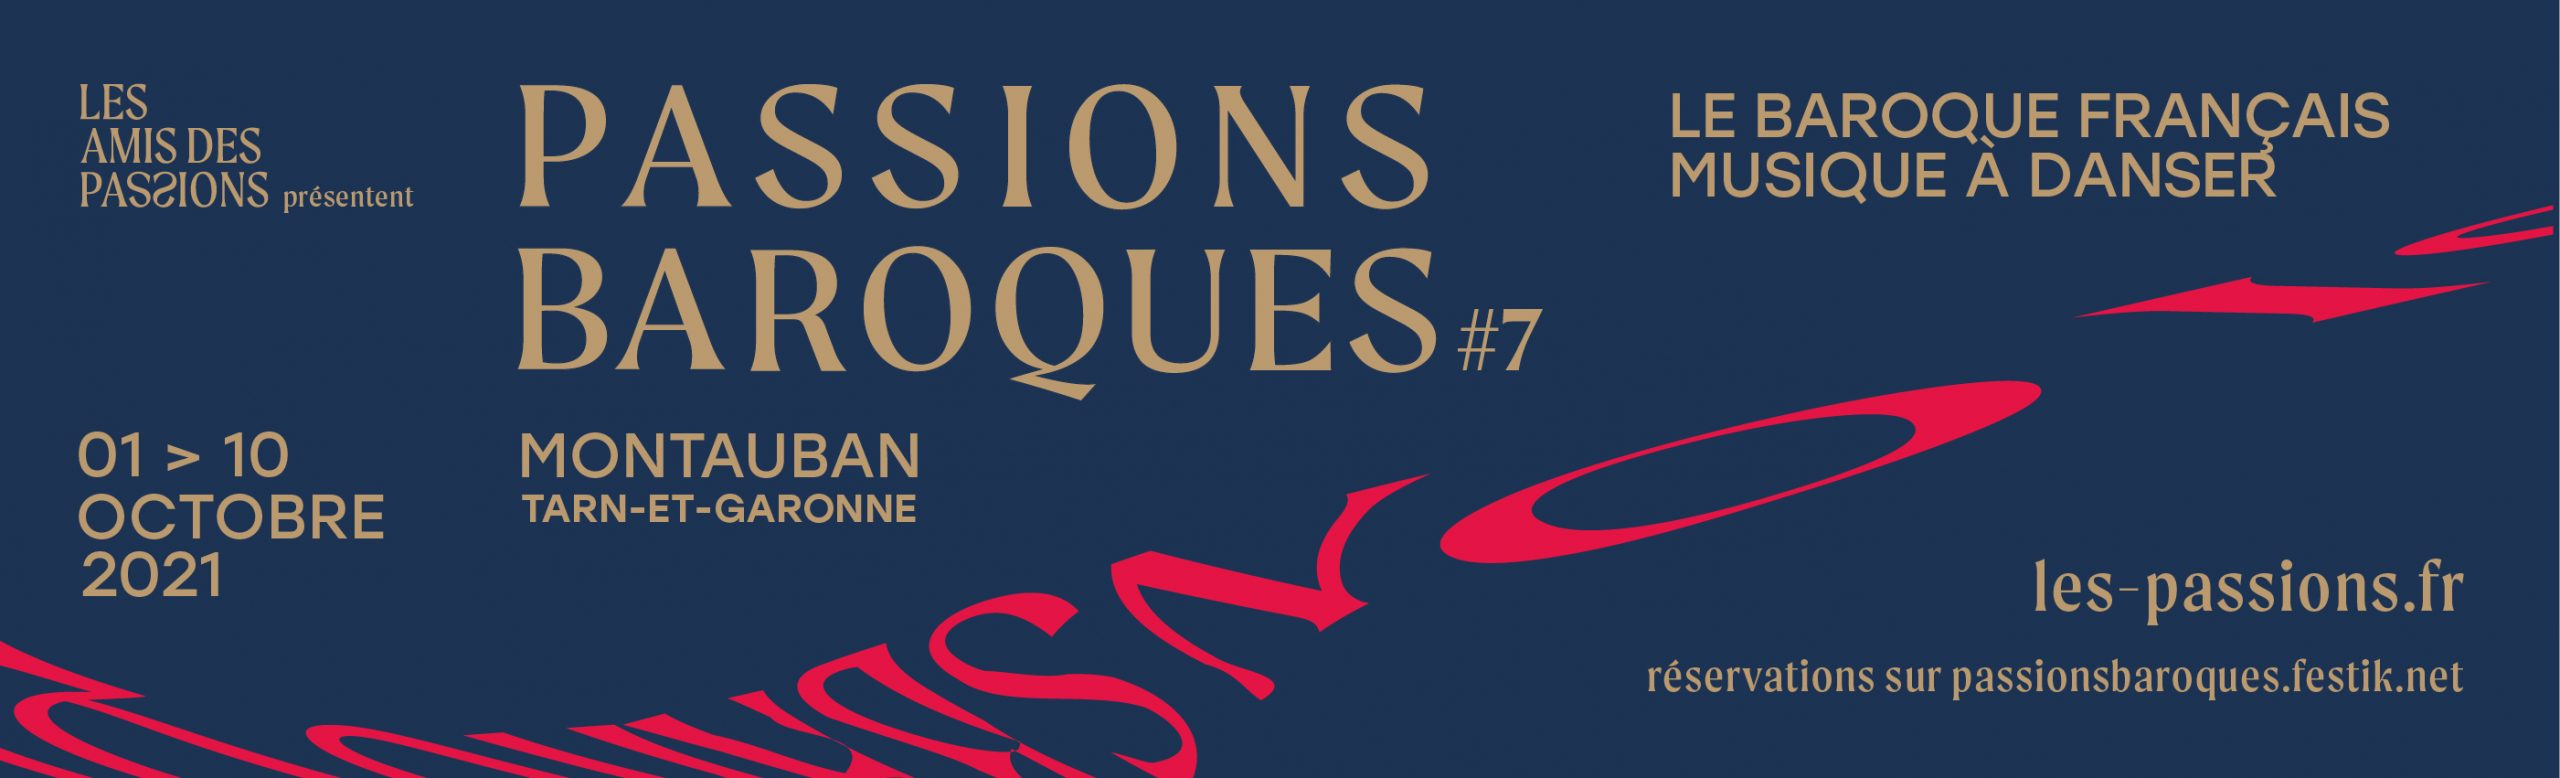 Passions Baroques 700